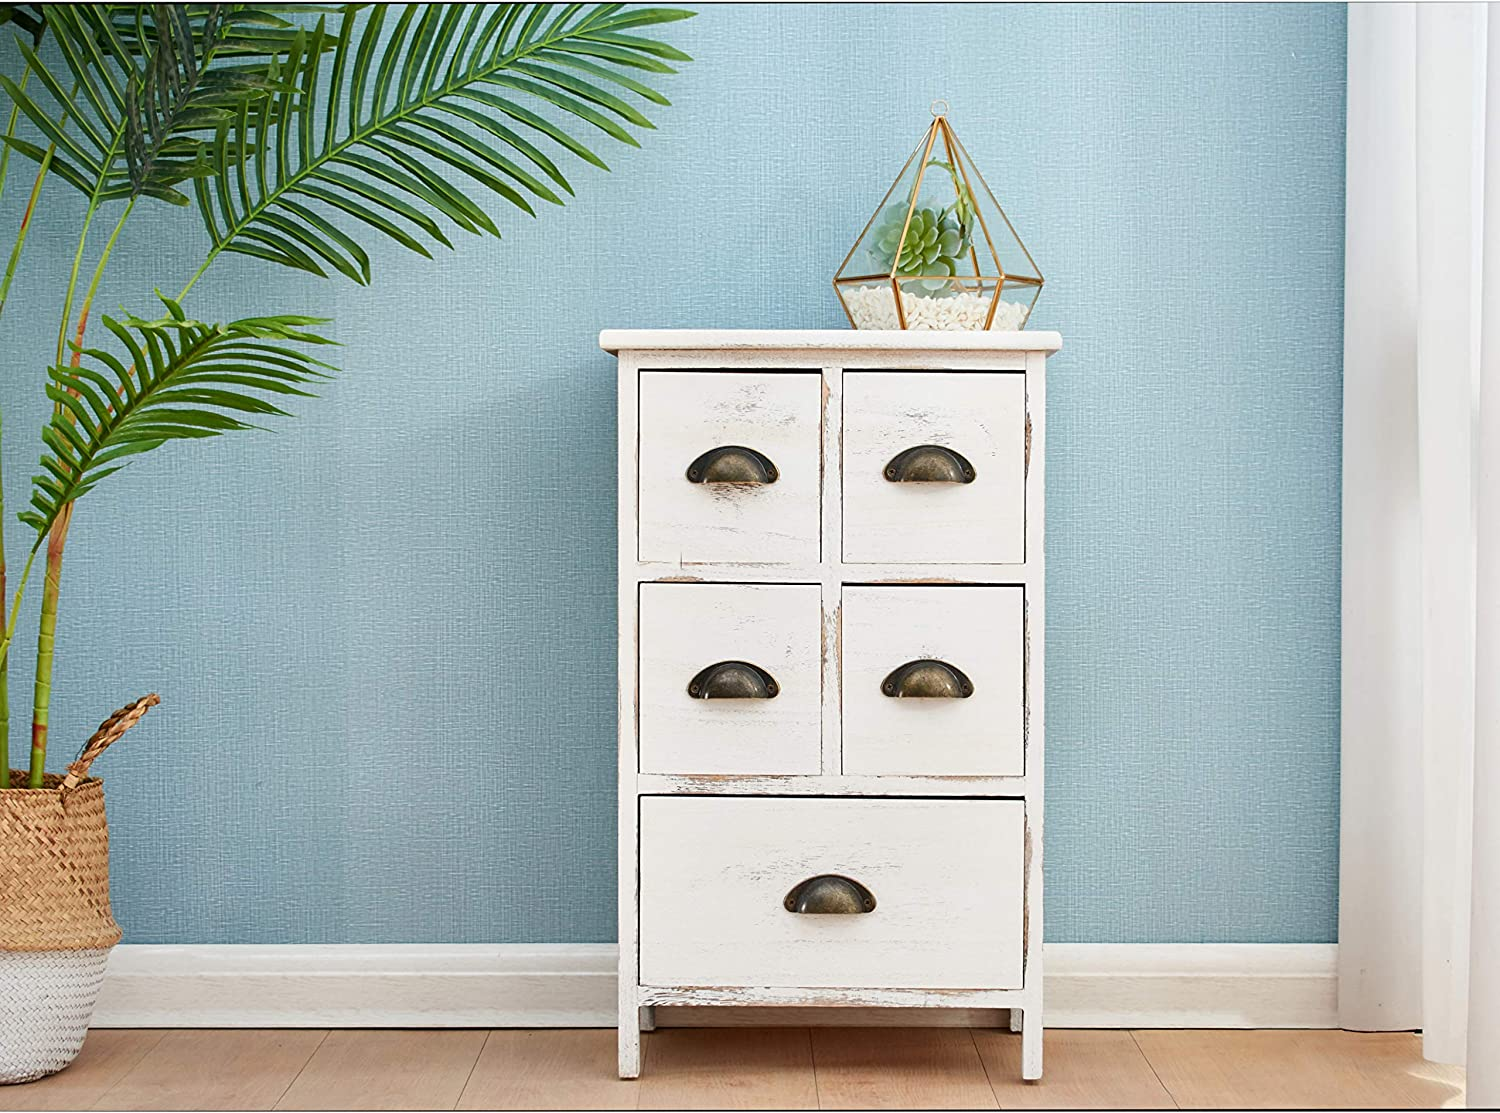 Cherry Tree Furniture Distressed White Paulownia Wood Shabby Chic Cabinet Chest of Drawers, 5 Drawers/w Metal Cup Handles